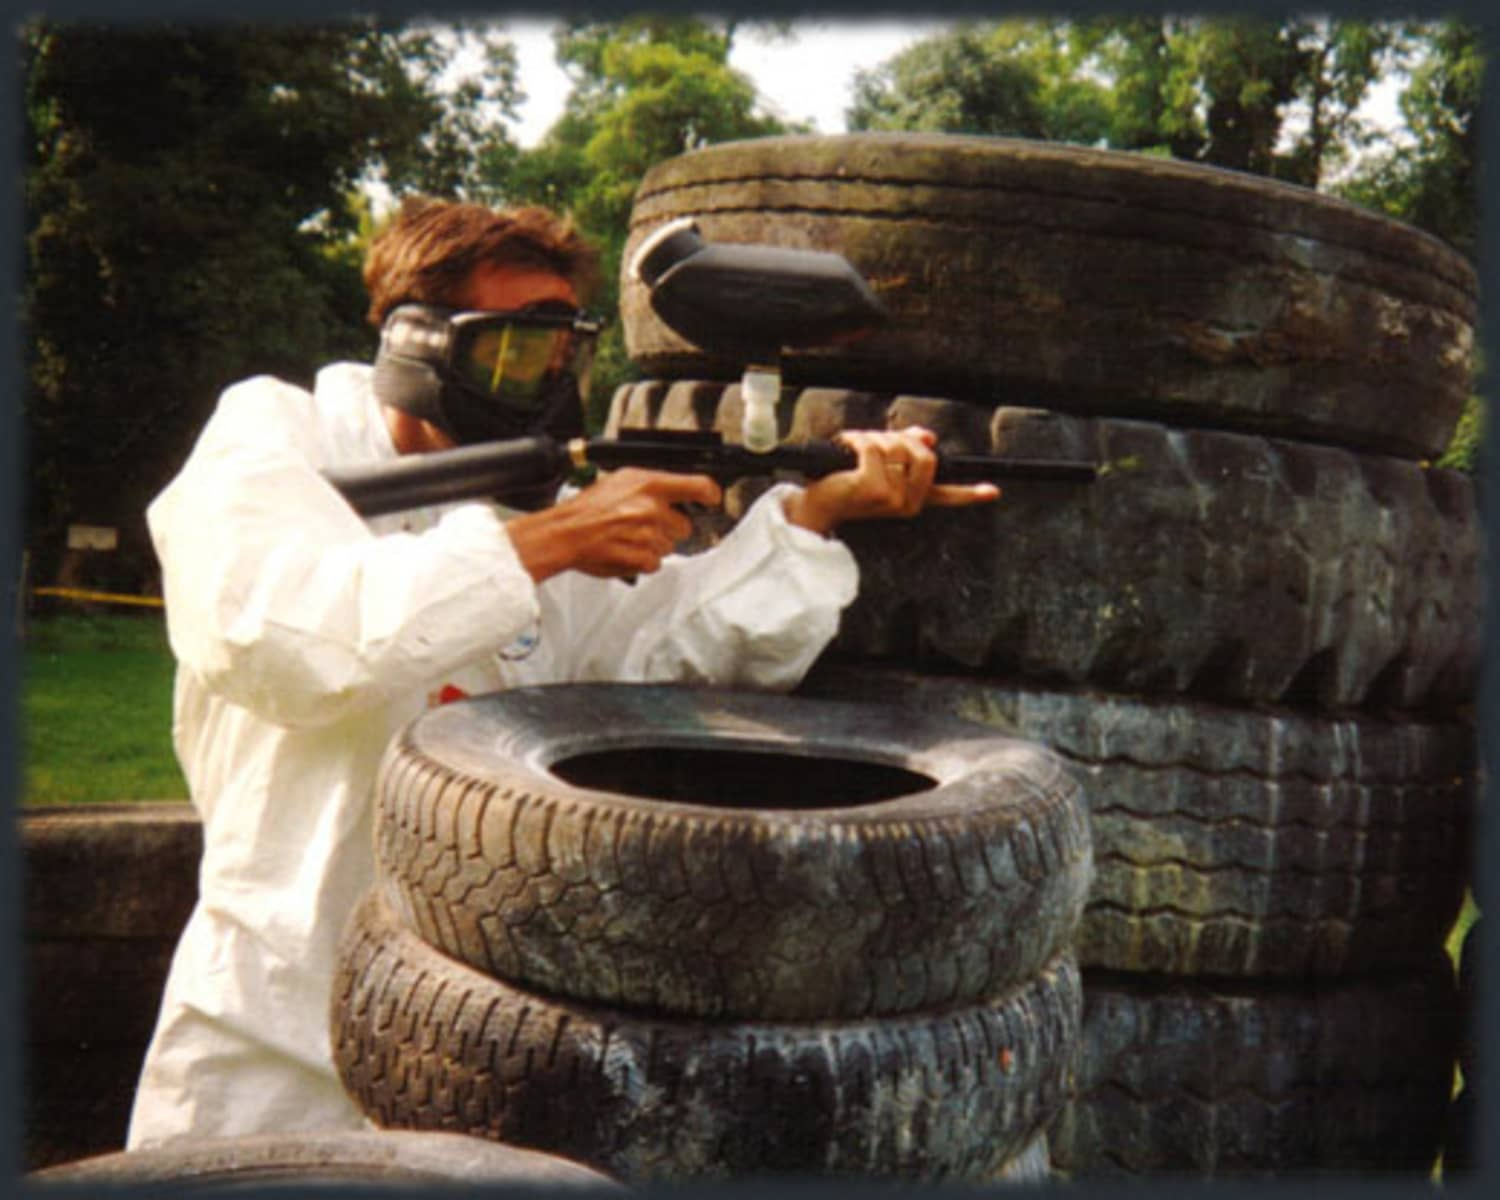 PAINTBALL 2000 - Othis